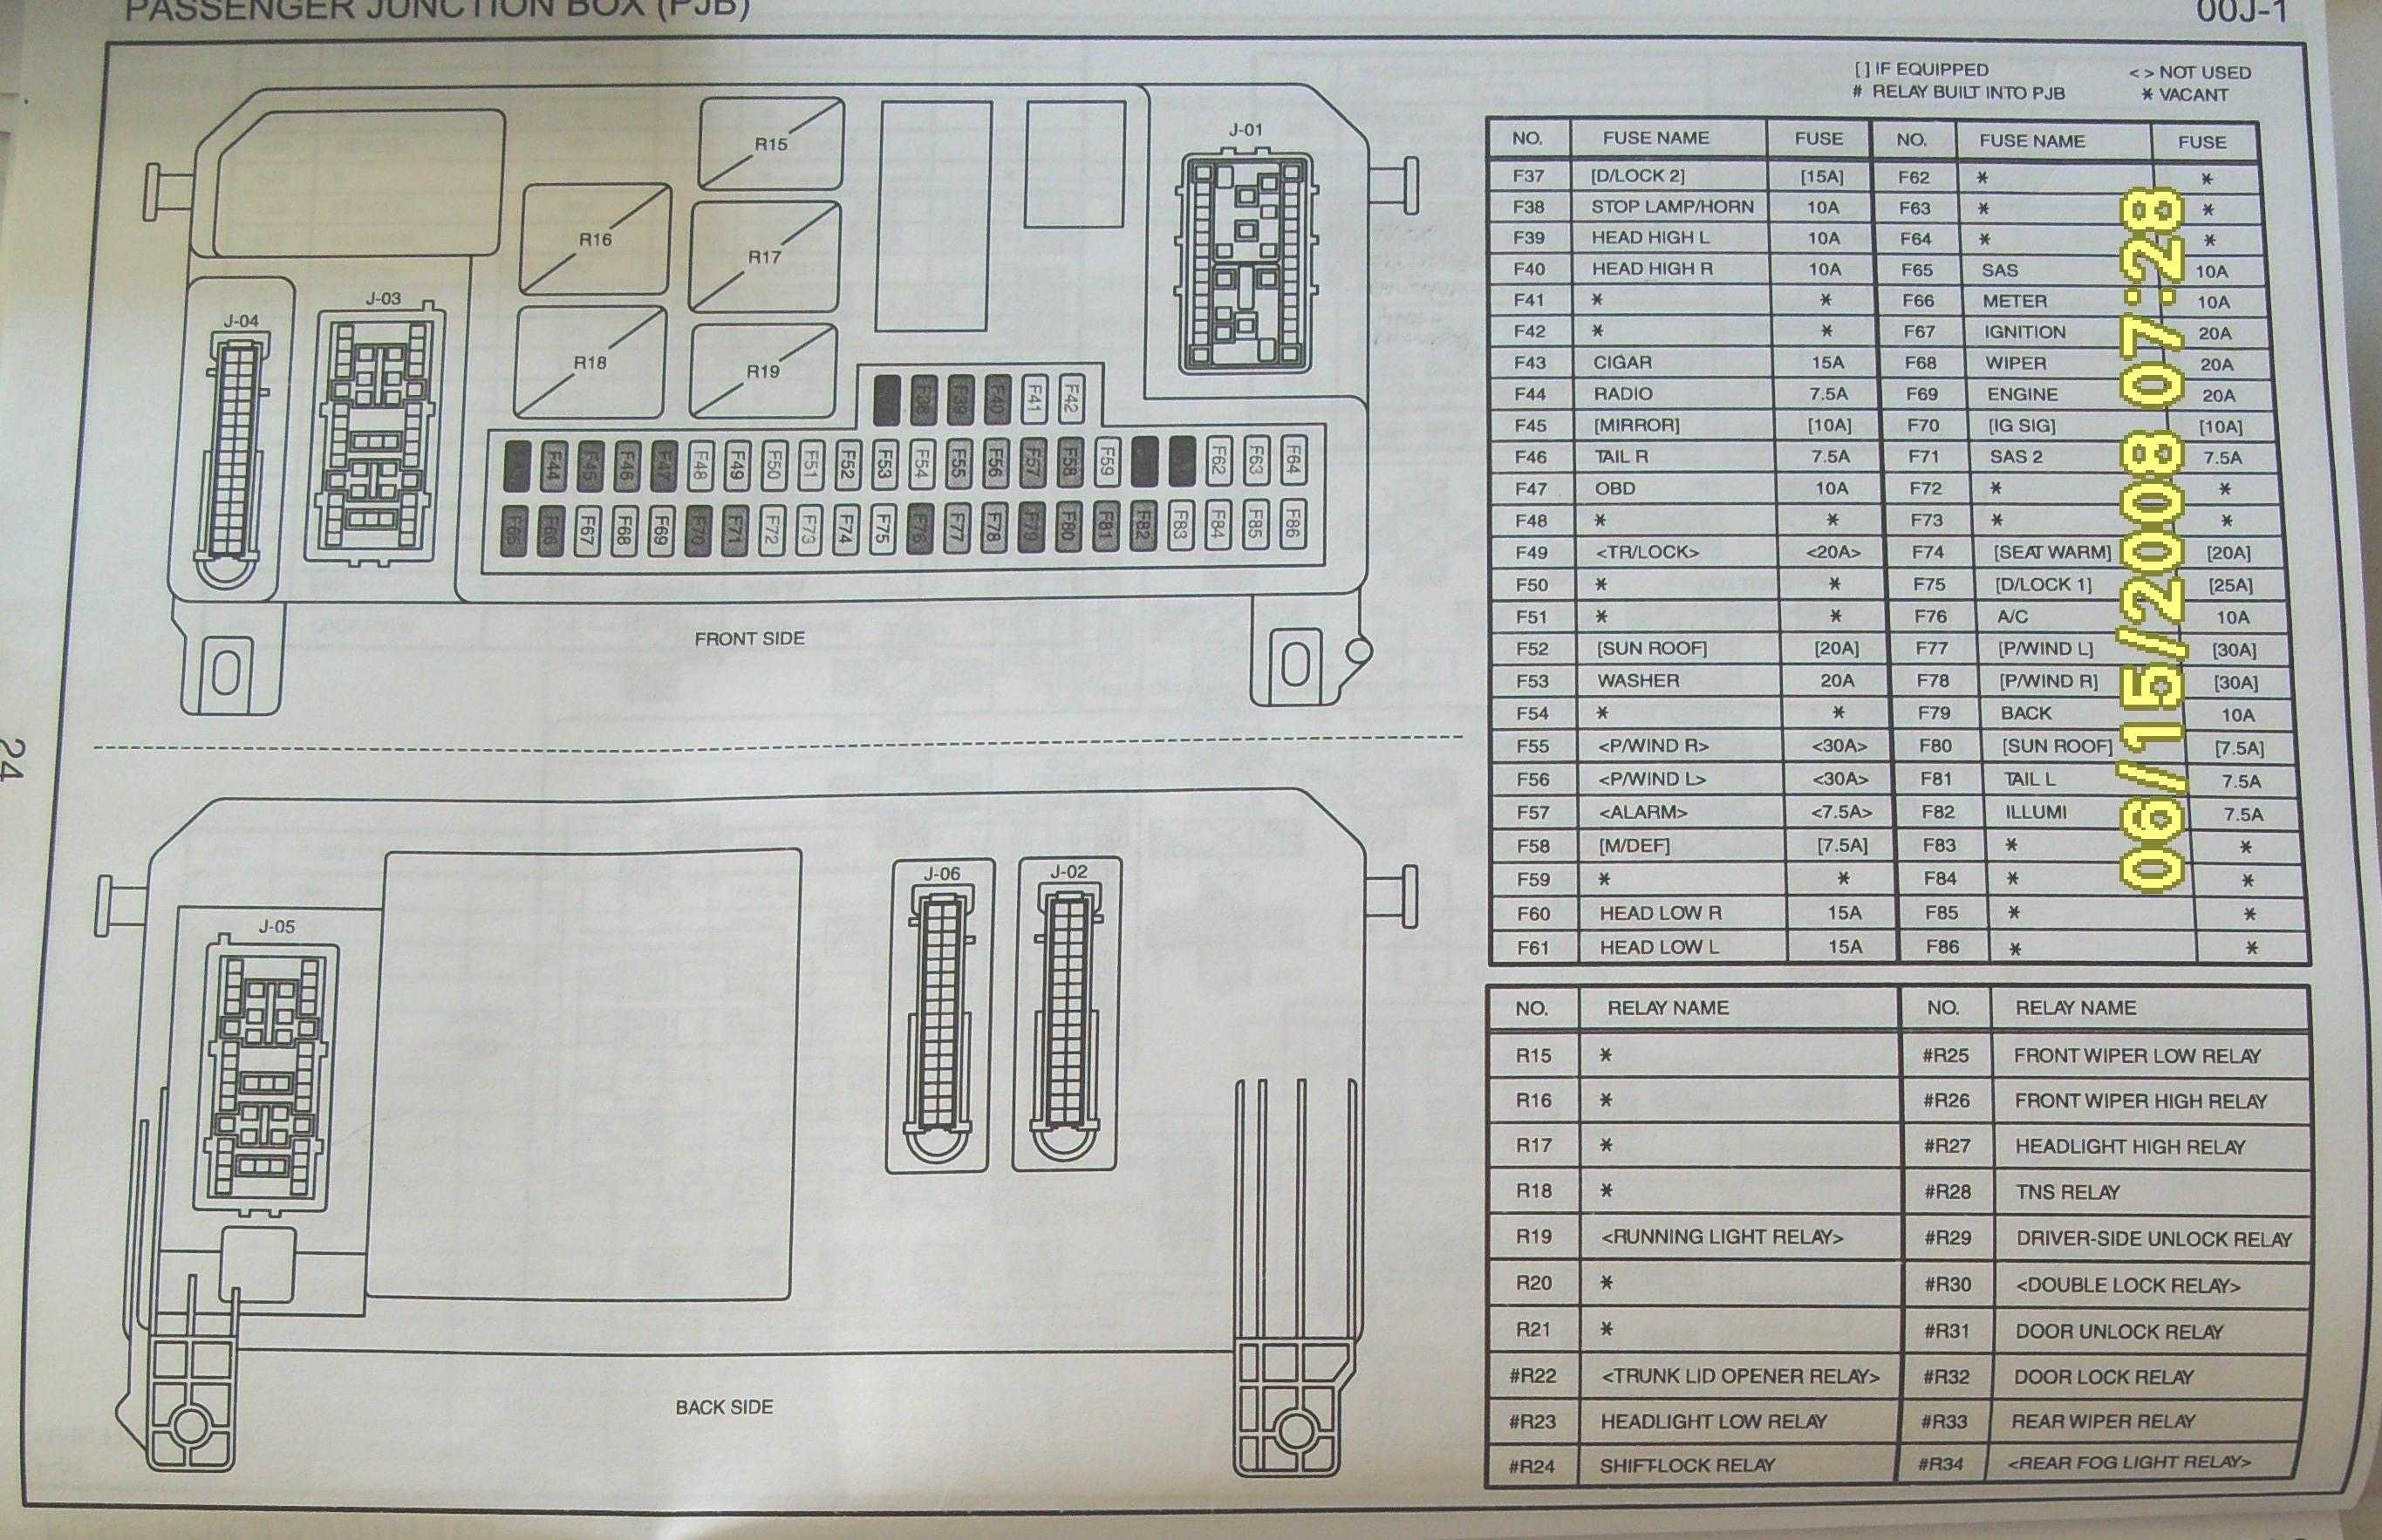 2004 mazda tribute fuse diagram segmented worm 2005 3 schematic hatchback box on best wiring library ford windstar